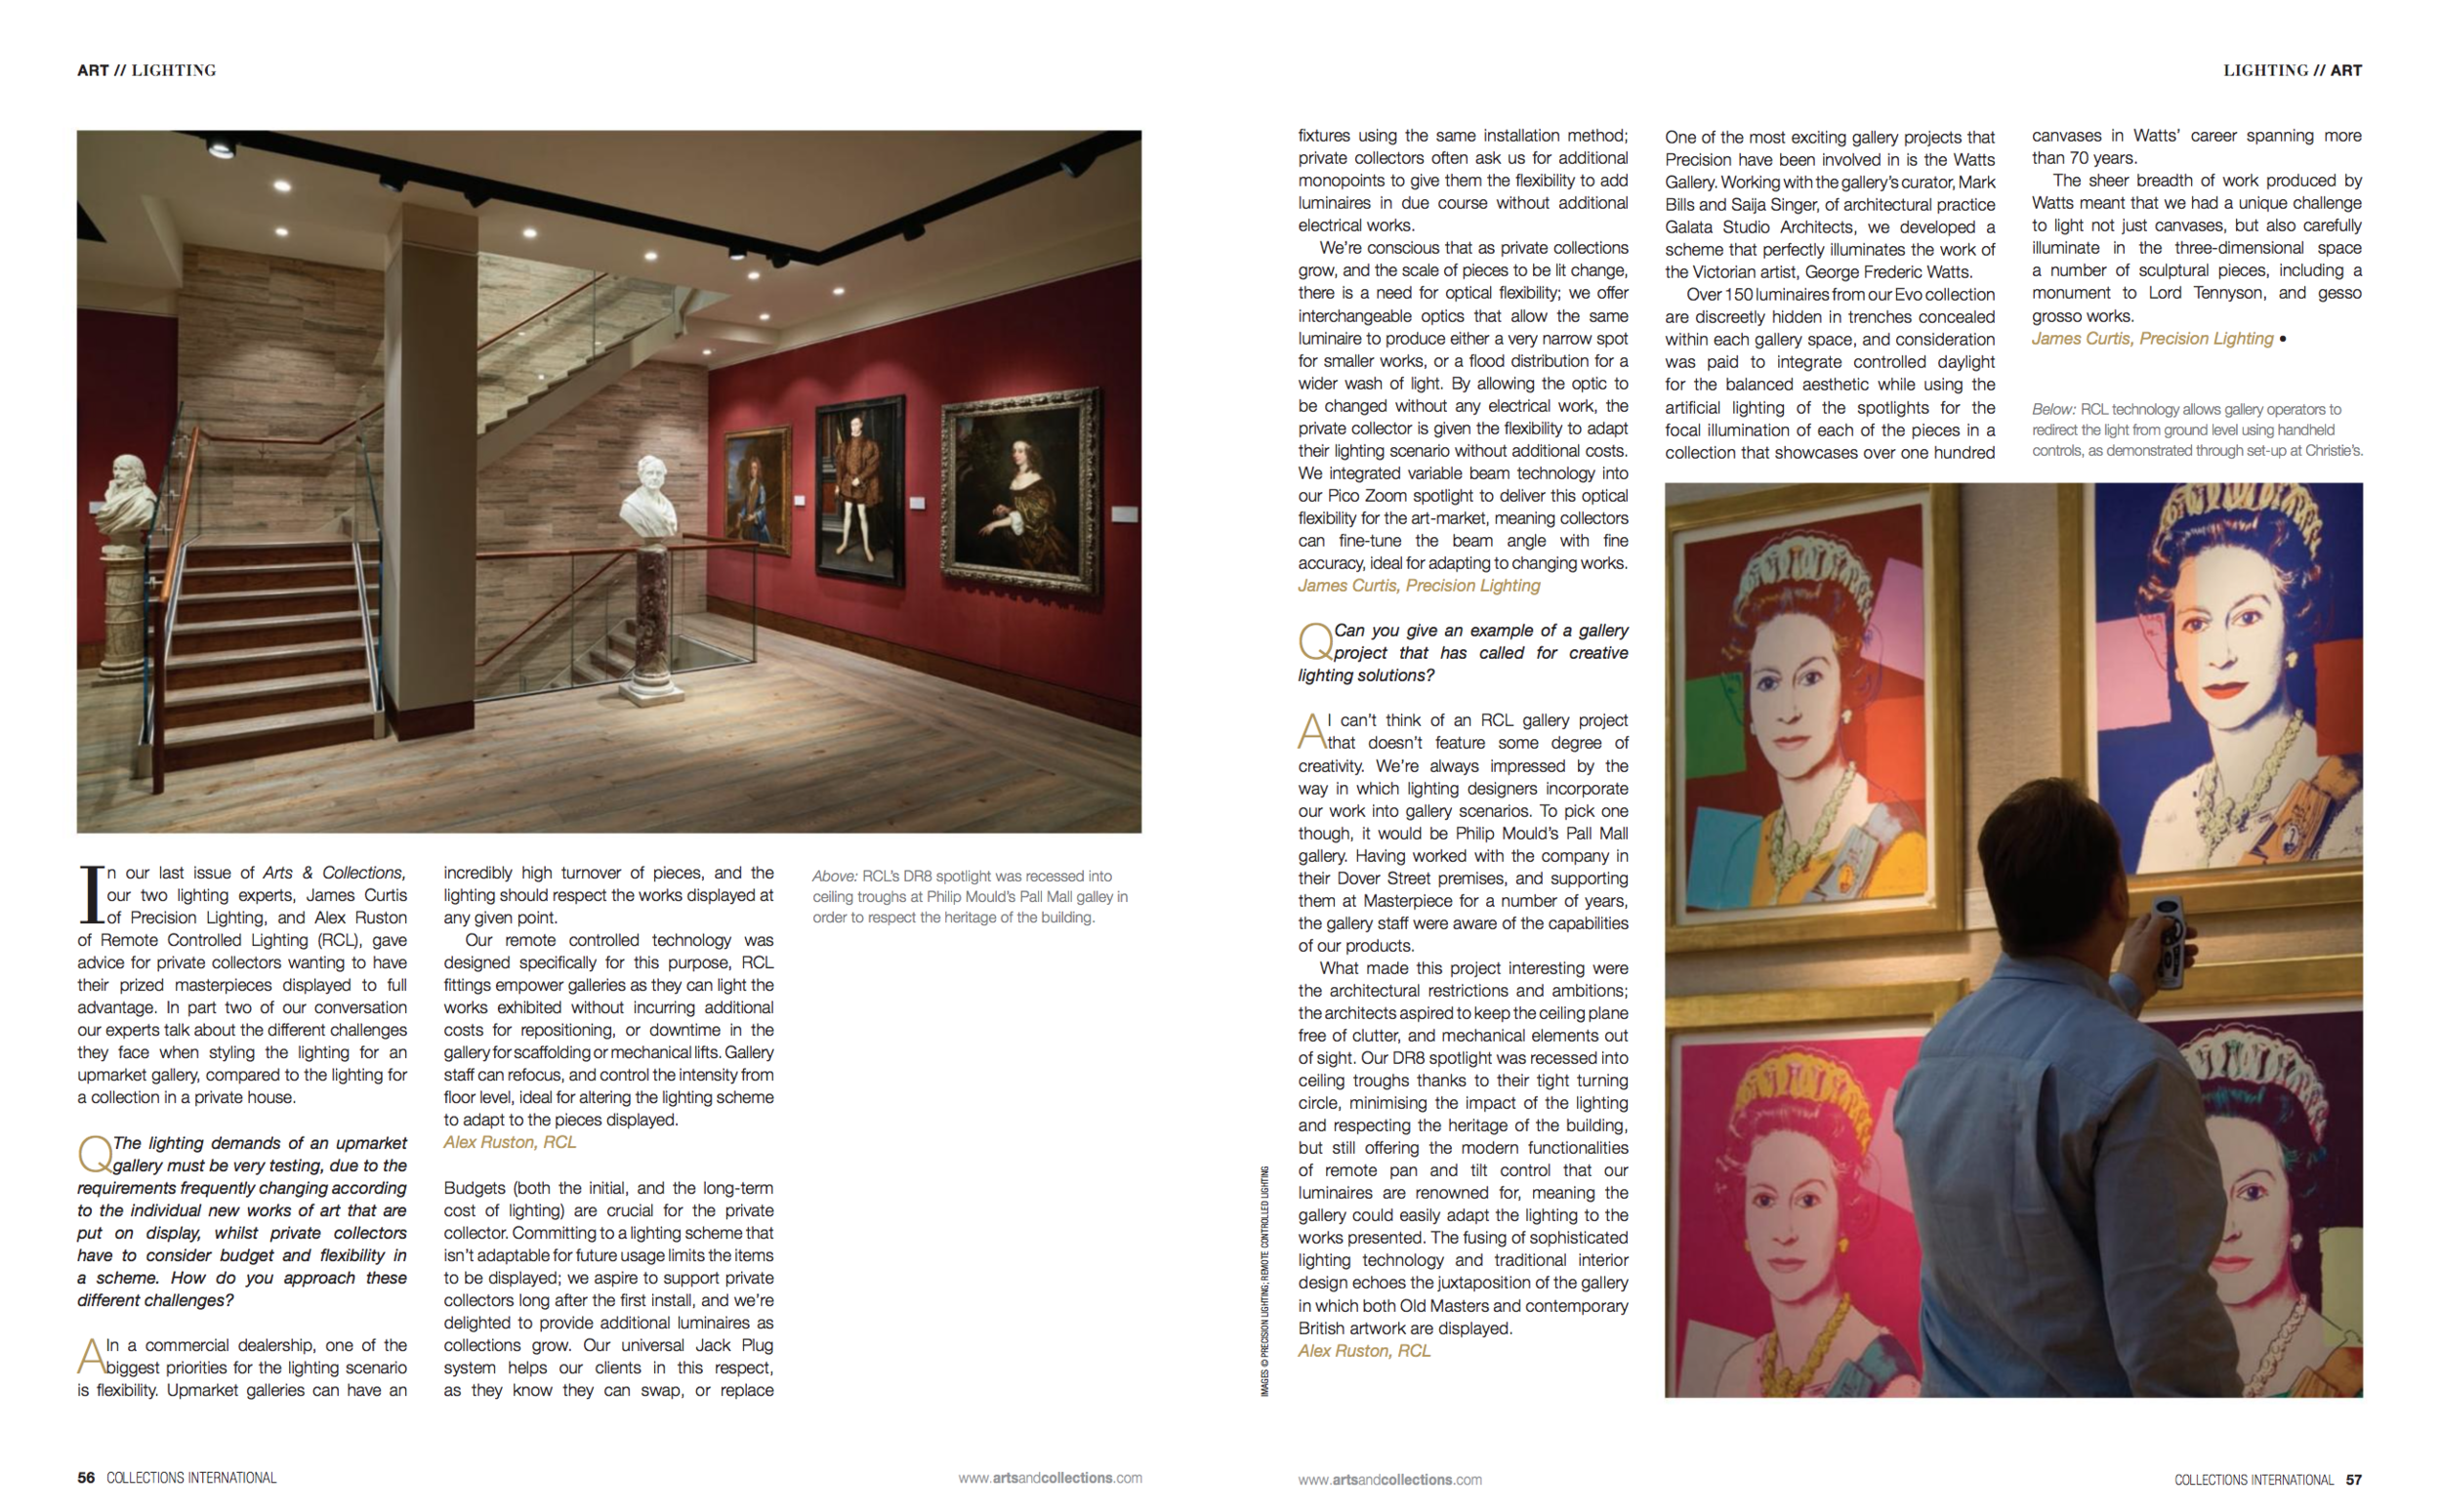 Arts & Collections pp. 56-57